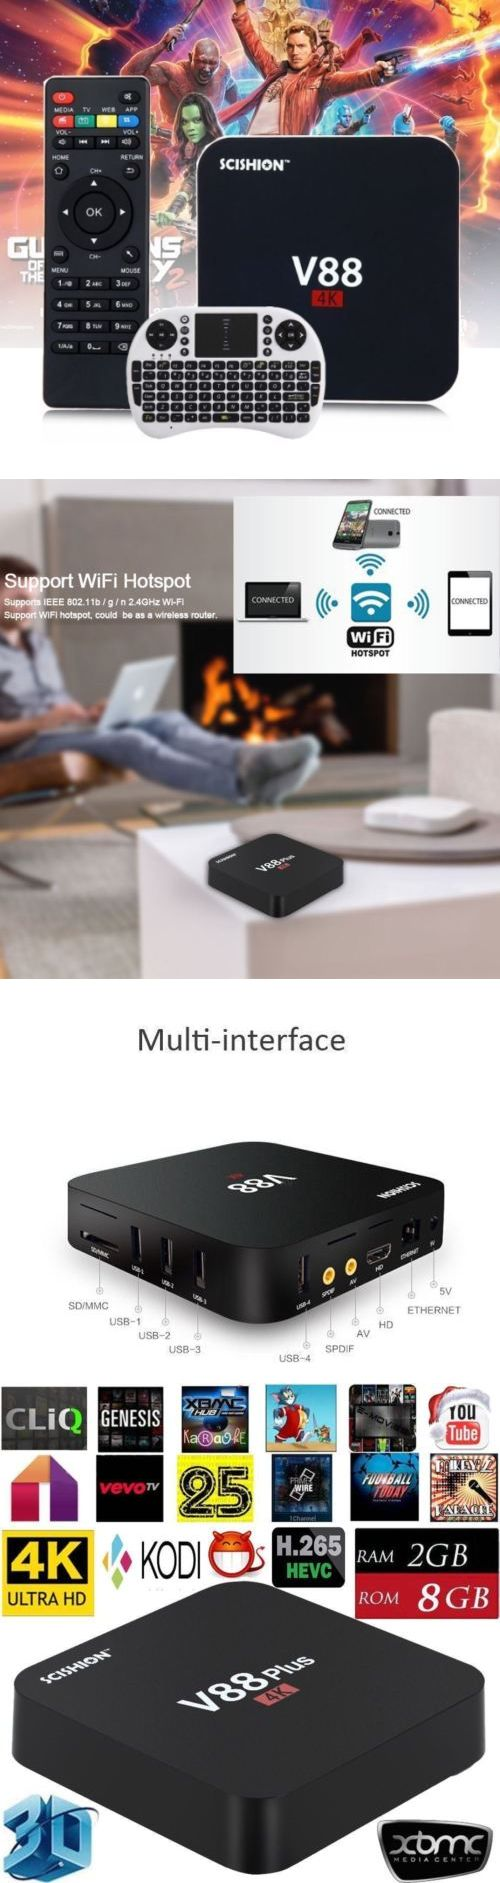 Cable TV Boxes: Hd Rk3229 V88 Quad Core Android 5.1 Smart Tv Box -4K- 8Gb Latest 16.1 + Keyboard -> BUY IT NOW ONLY: $30.52 on eBay!